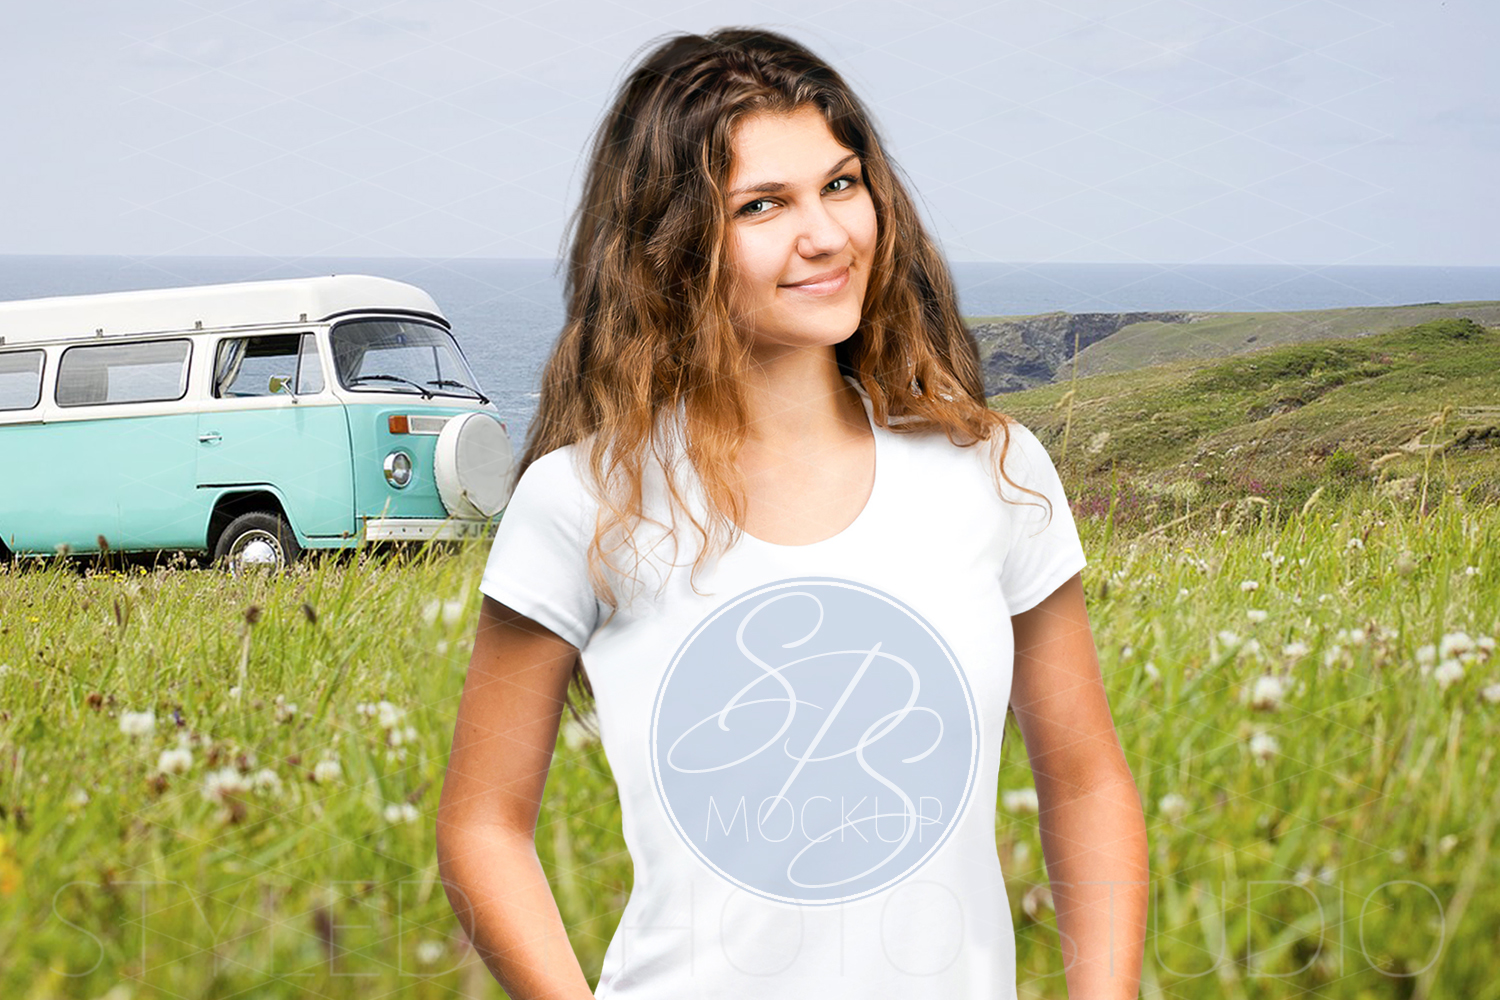 Womens tShirt Mockup with Hippy Bus example image 1